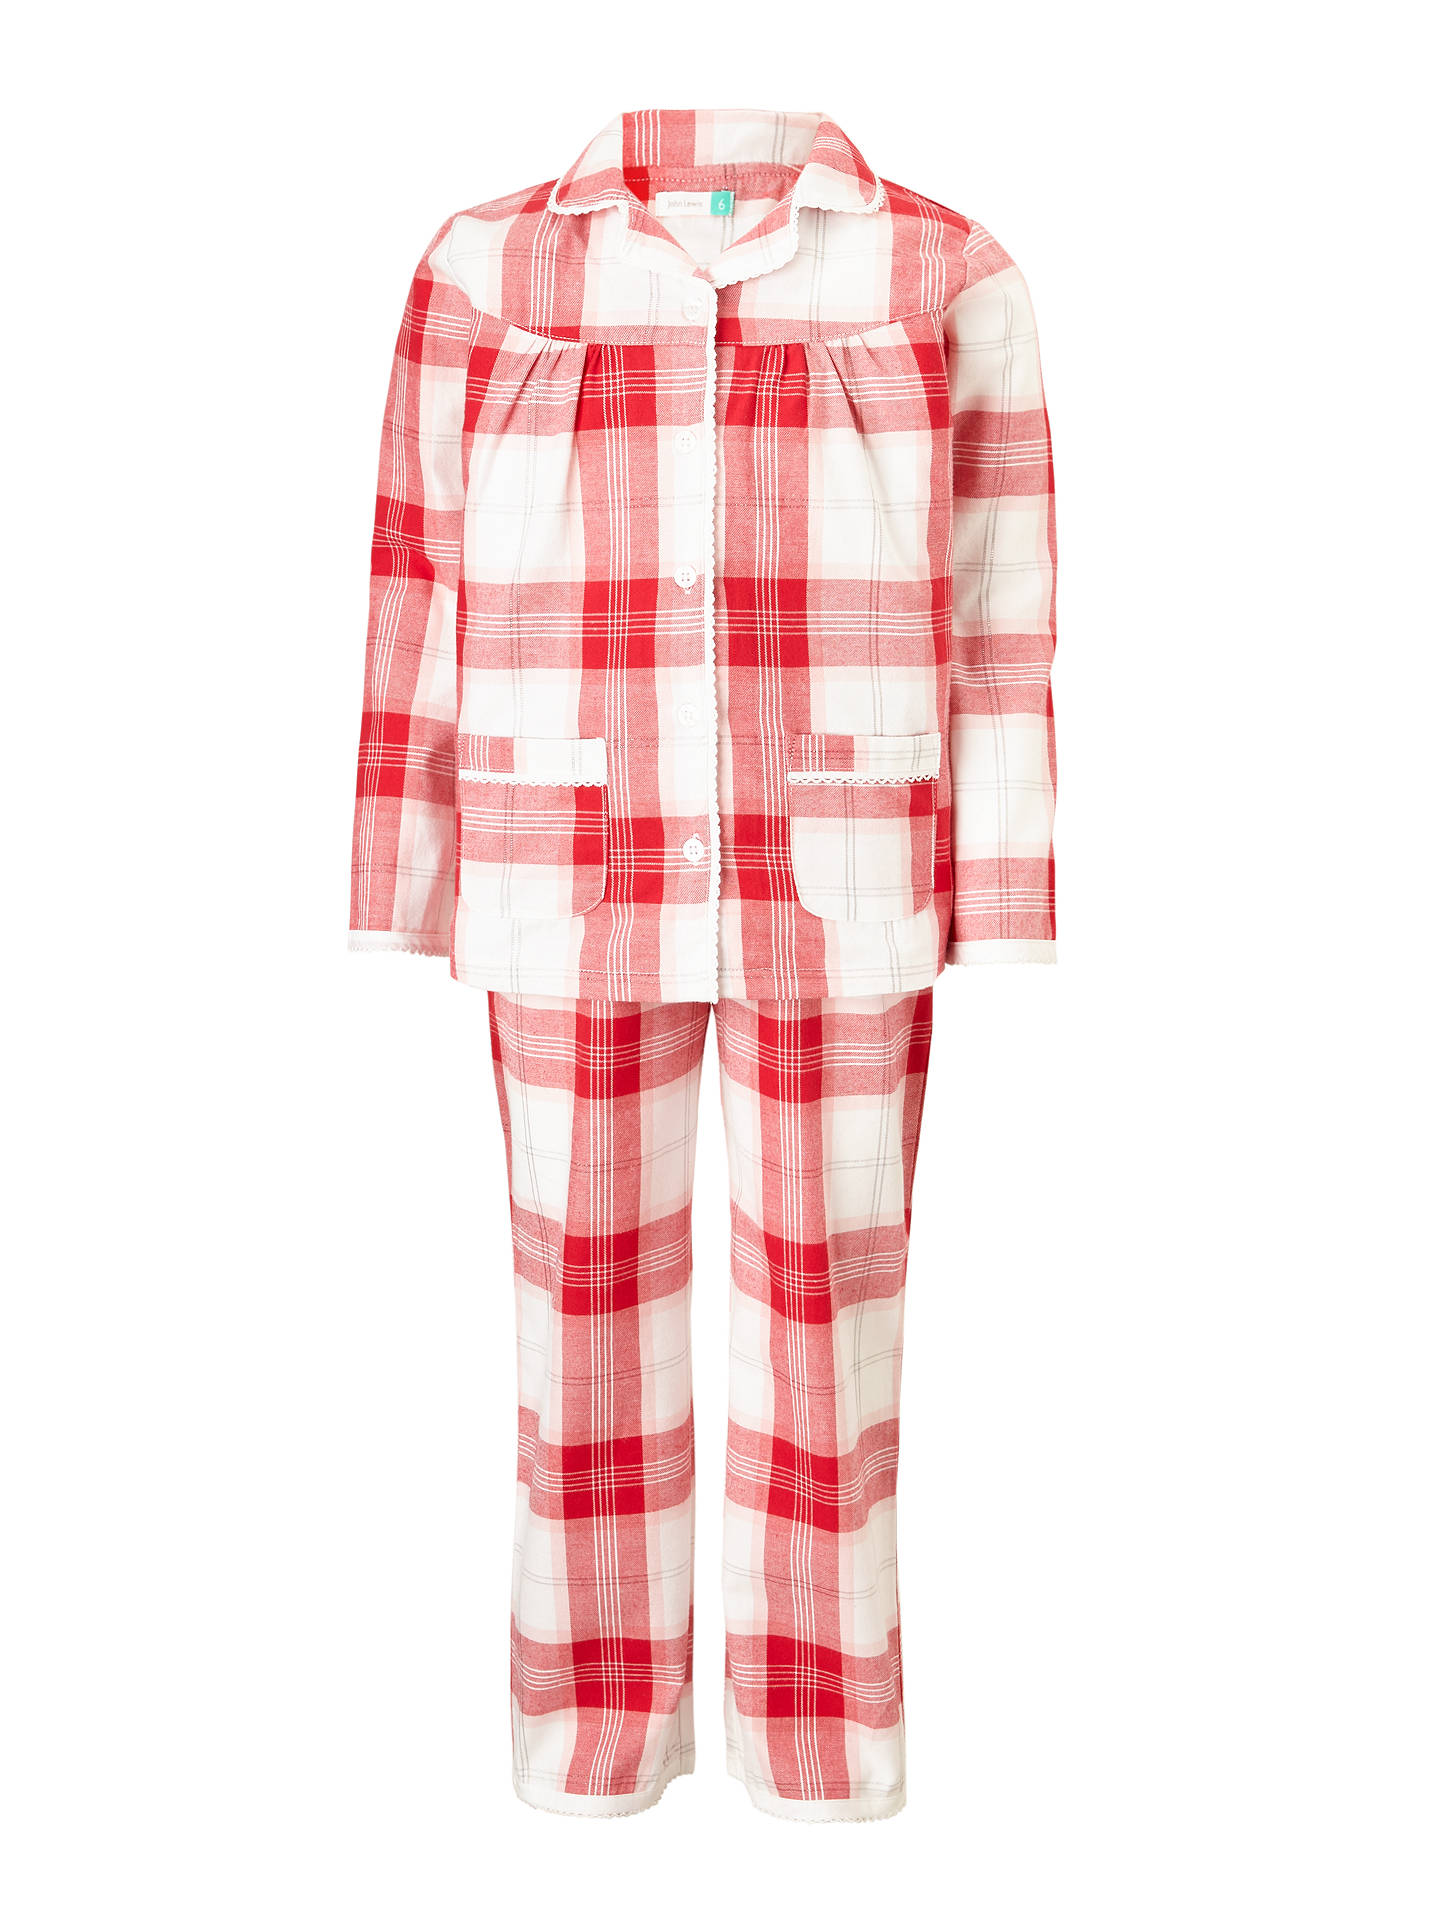 buyjohn lewis girls christmas tartan woven pyjamas red 2 years online at johnlewis - Childrens Christmas Pyjamas